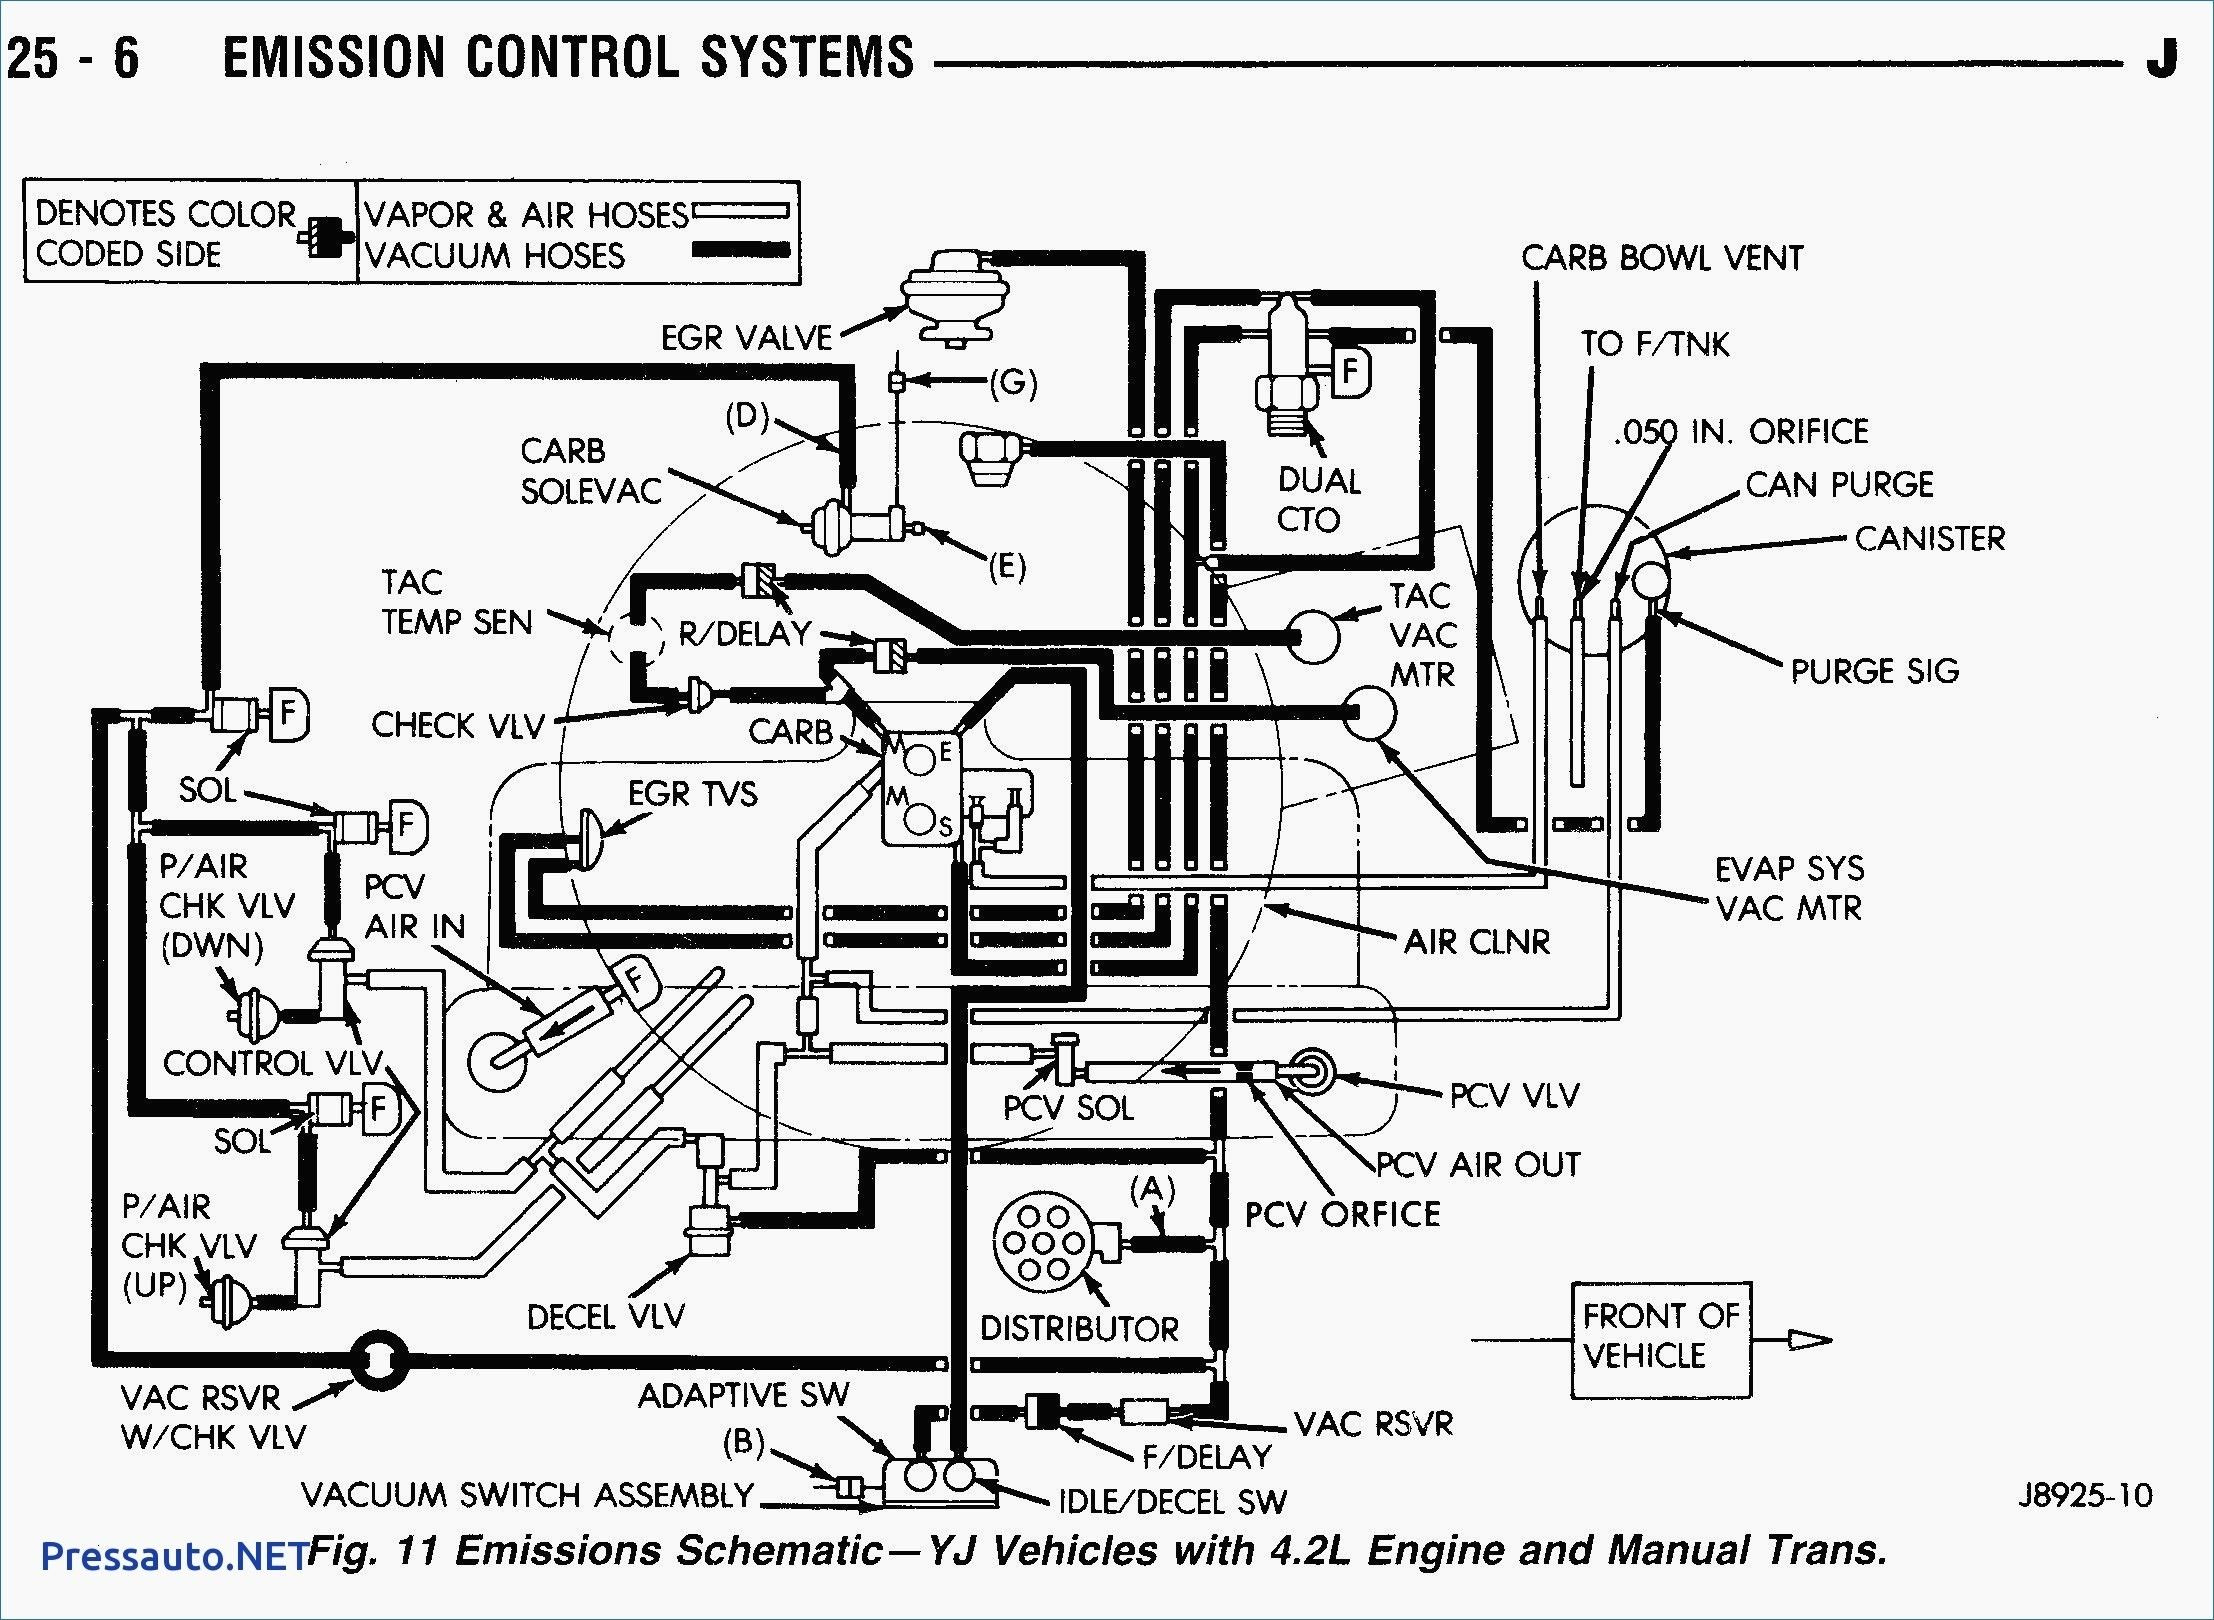 1987 Jeep Yj Wiring Diagram 2 Hp Baldor Motor Wiring Diagram For Wiring Diagram Schematics